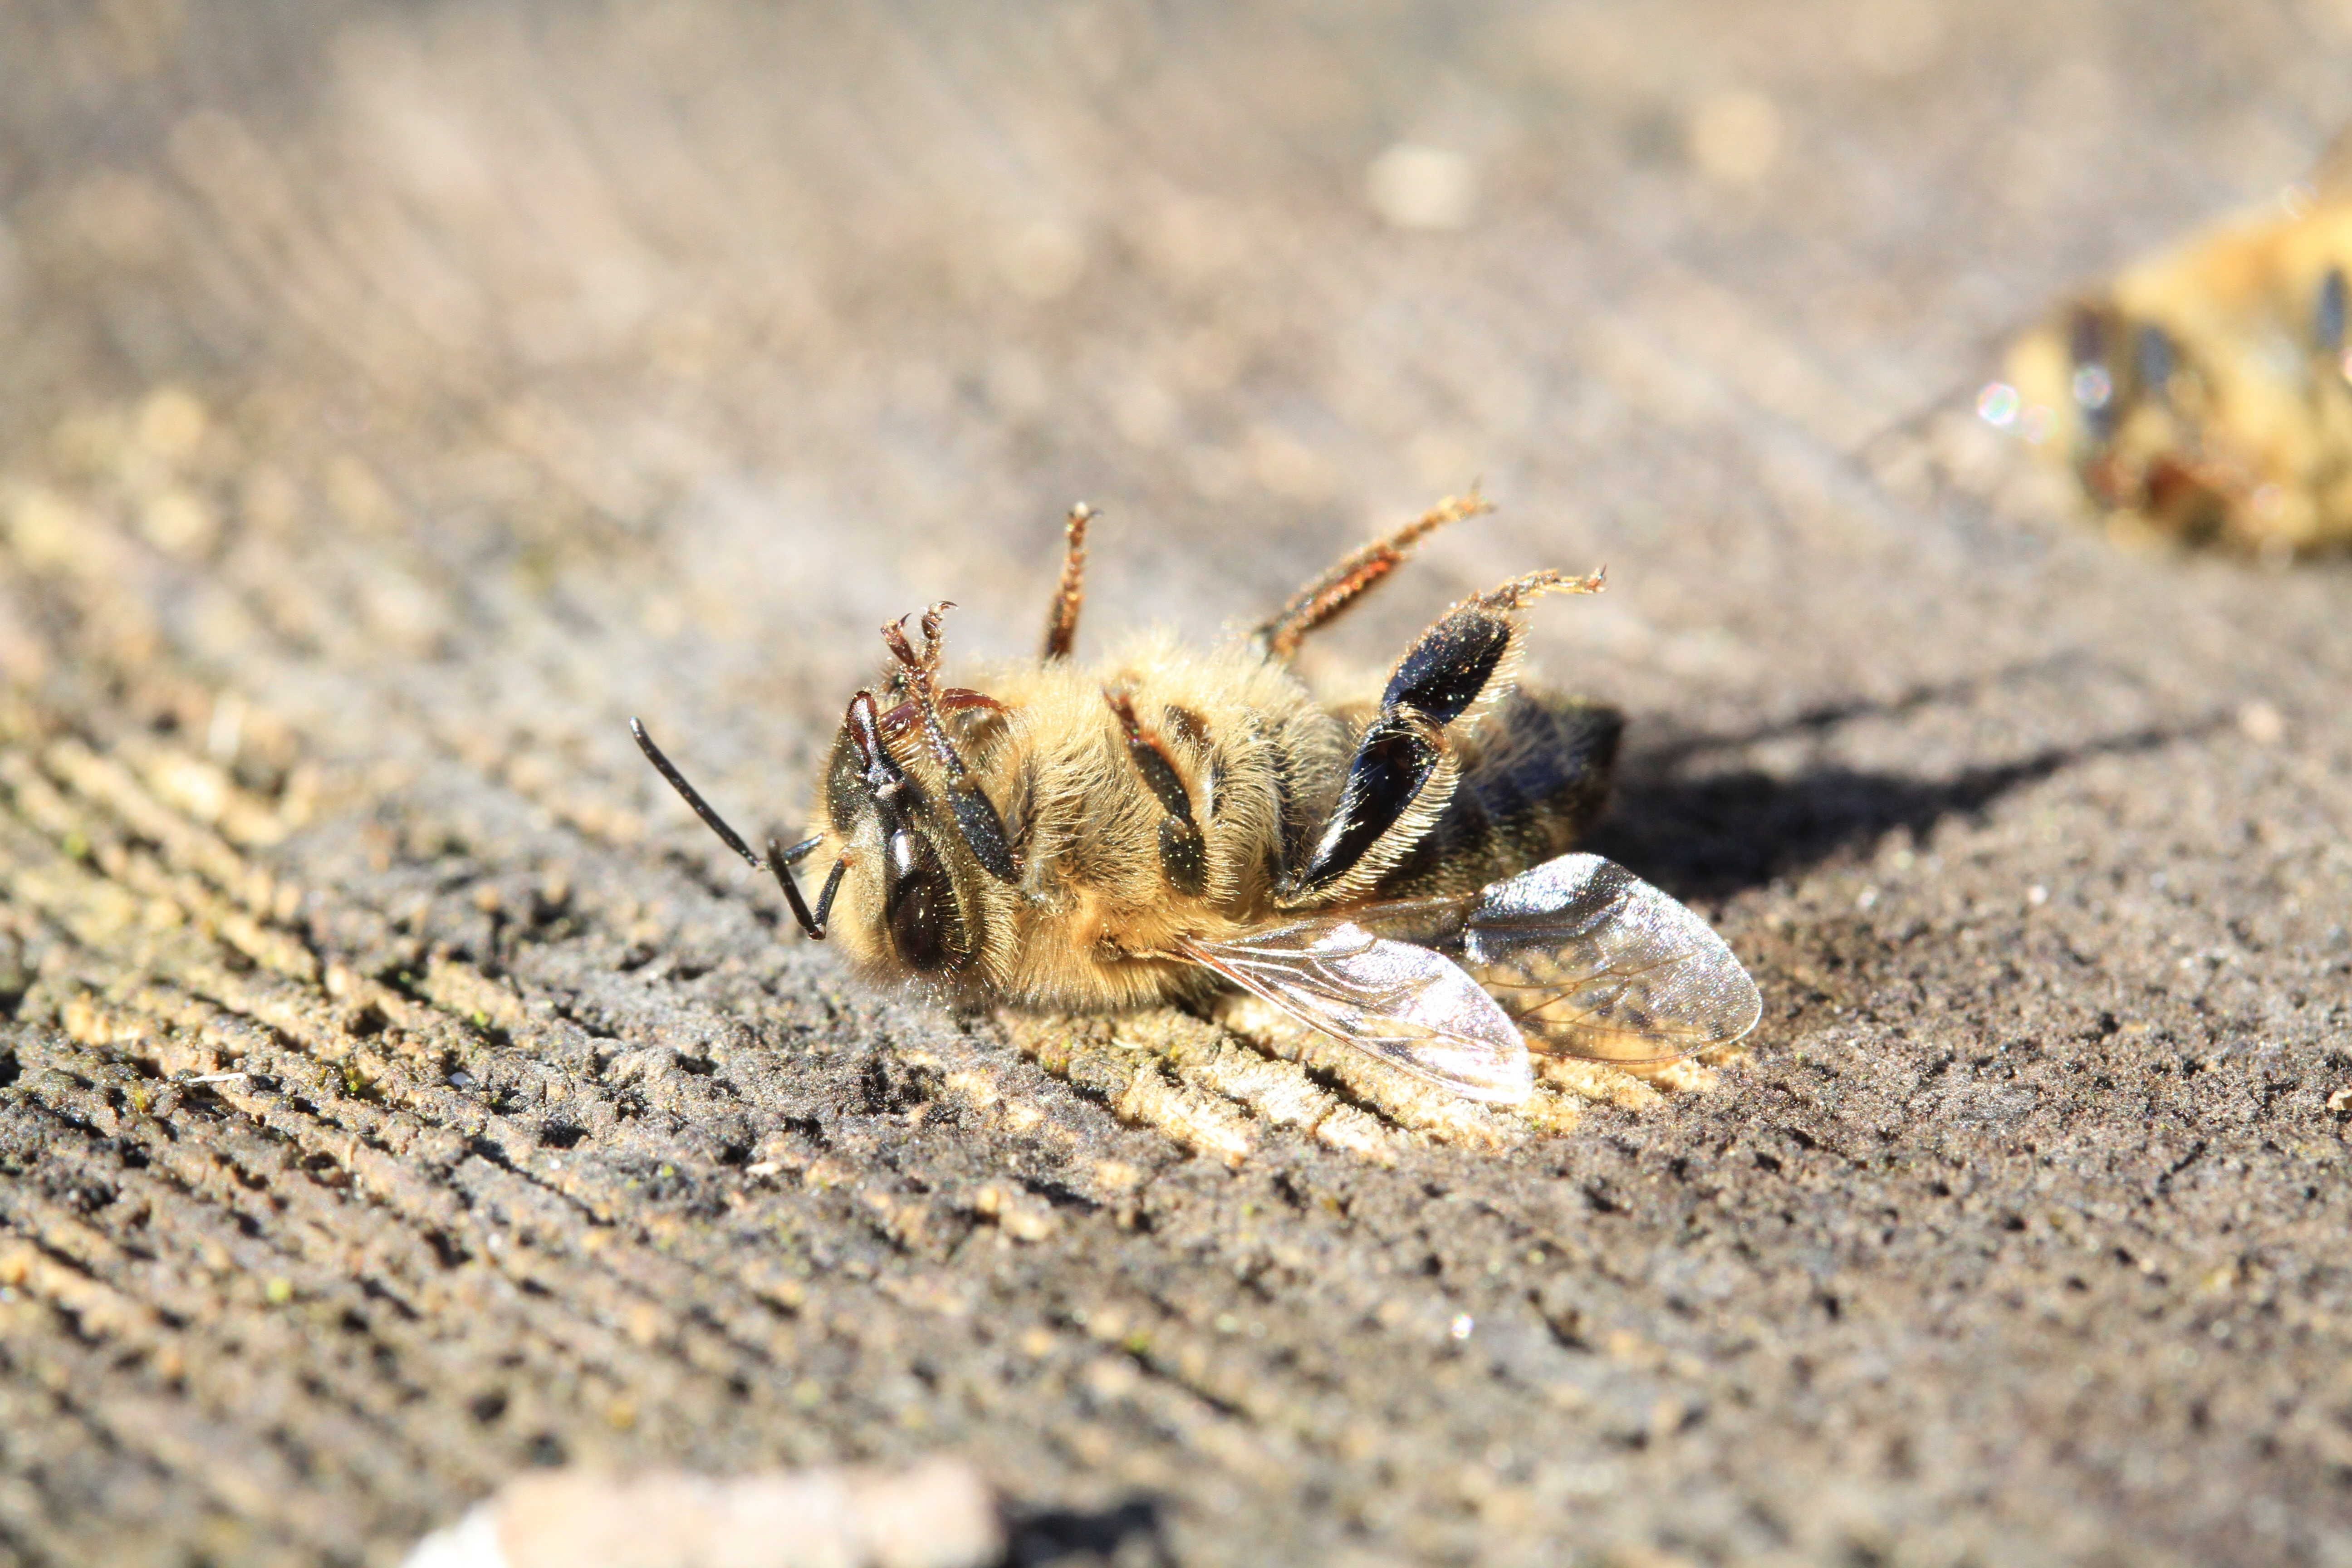 The zombie pesticide: Are bee-killing neonics back under Brexit?